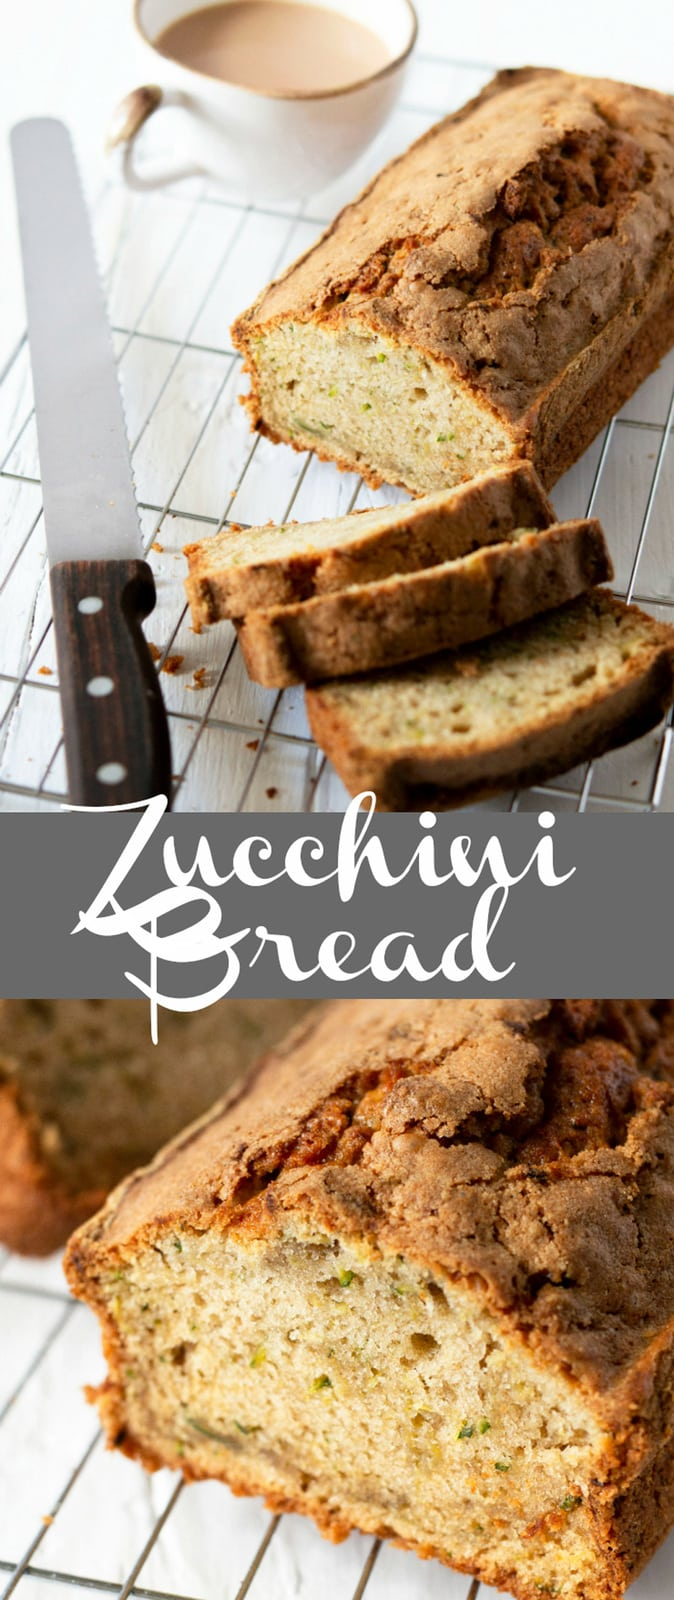 Zucchini Bread. Very moist and tender quick bread. Easy to make, no mixer required. This is my go-to zucchini bread recipe.